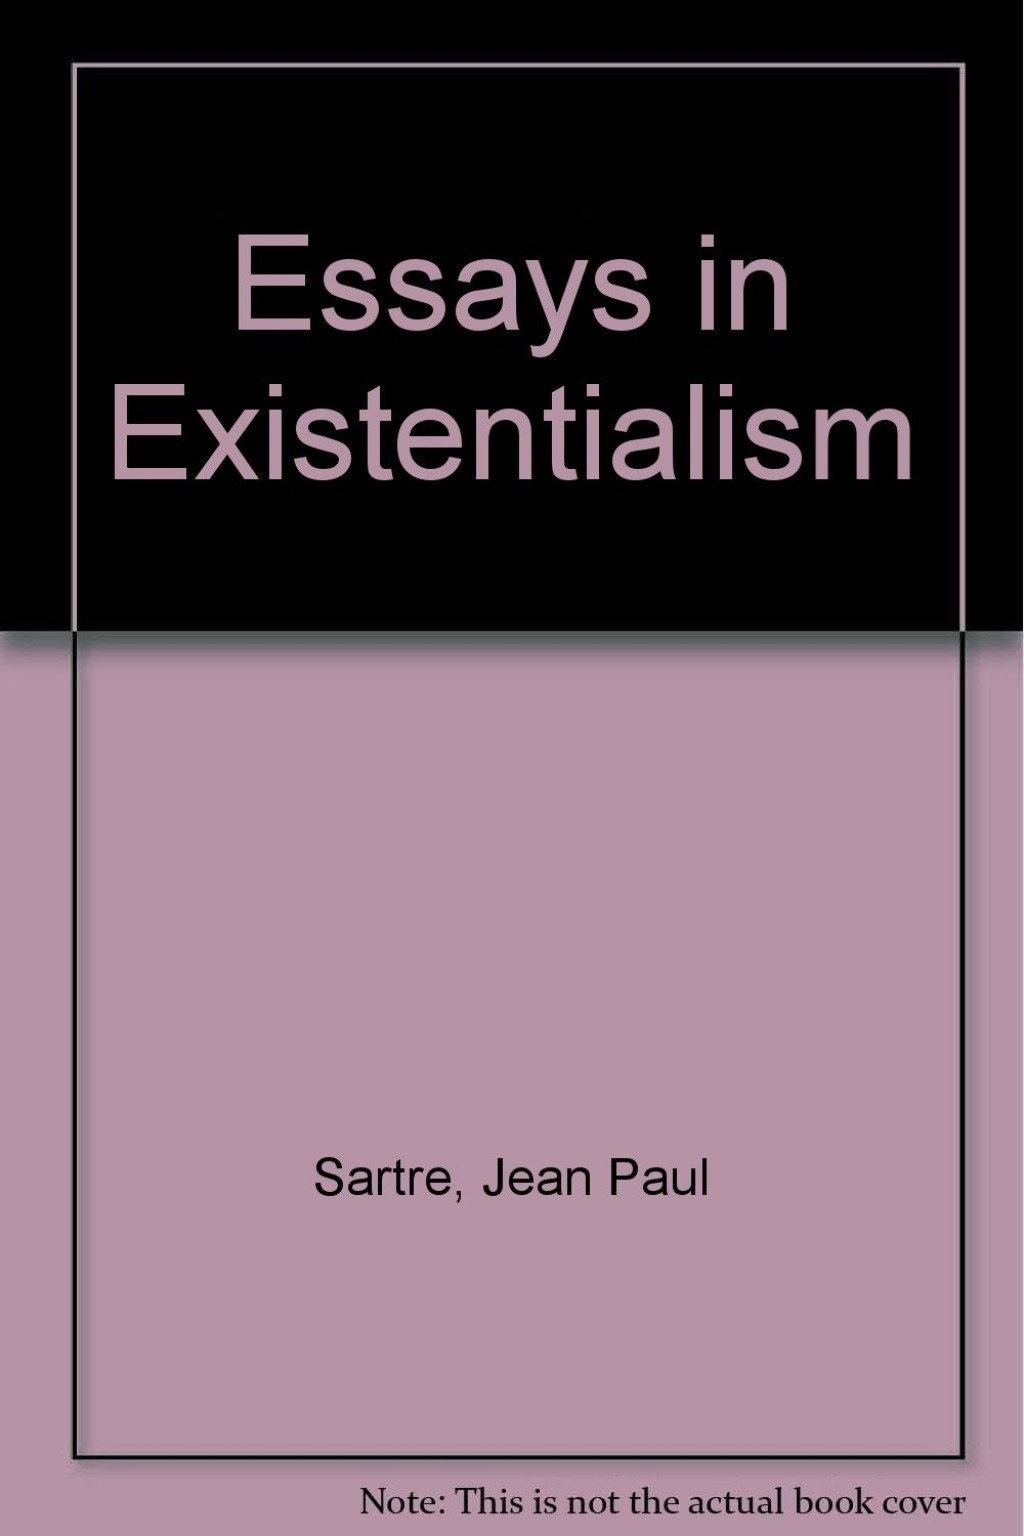 002 61qllswwwgl Essay Example Essays In Outstanding Existentialism Pdf Sartre Large